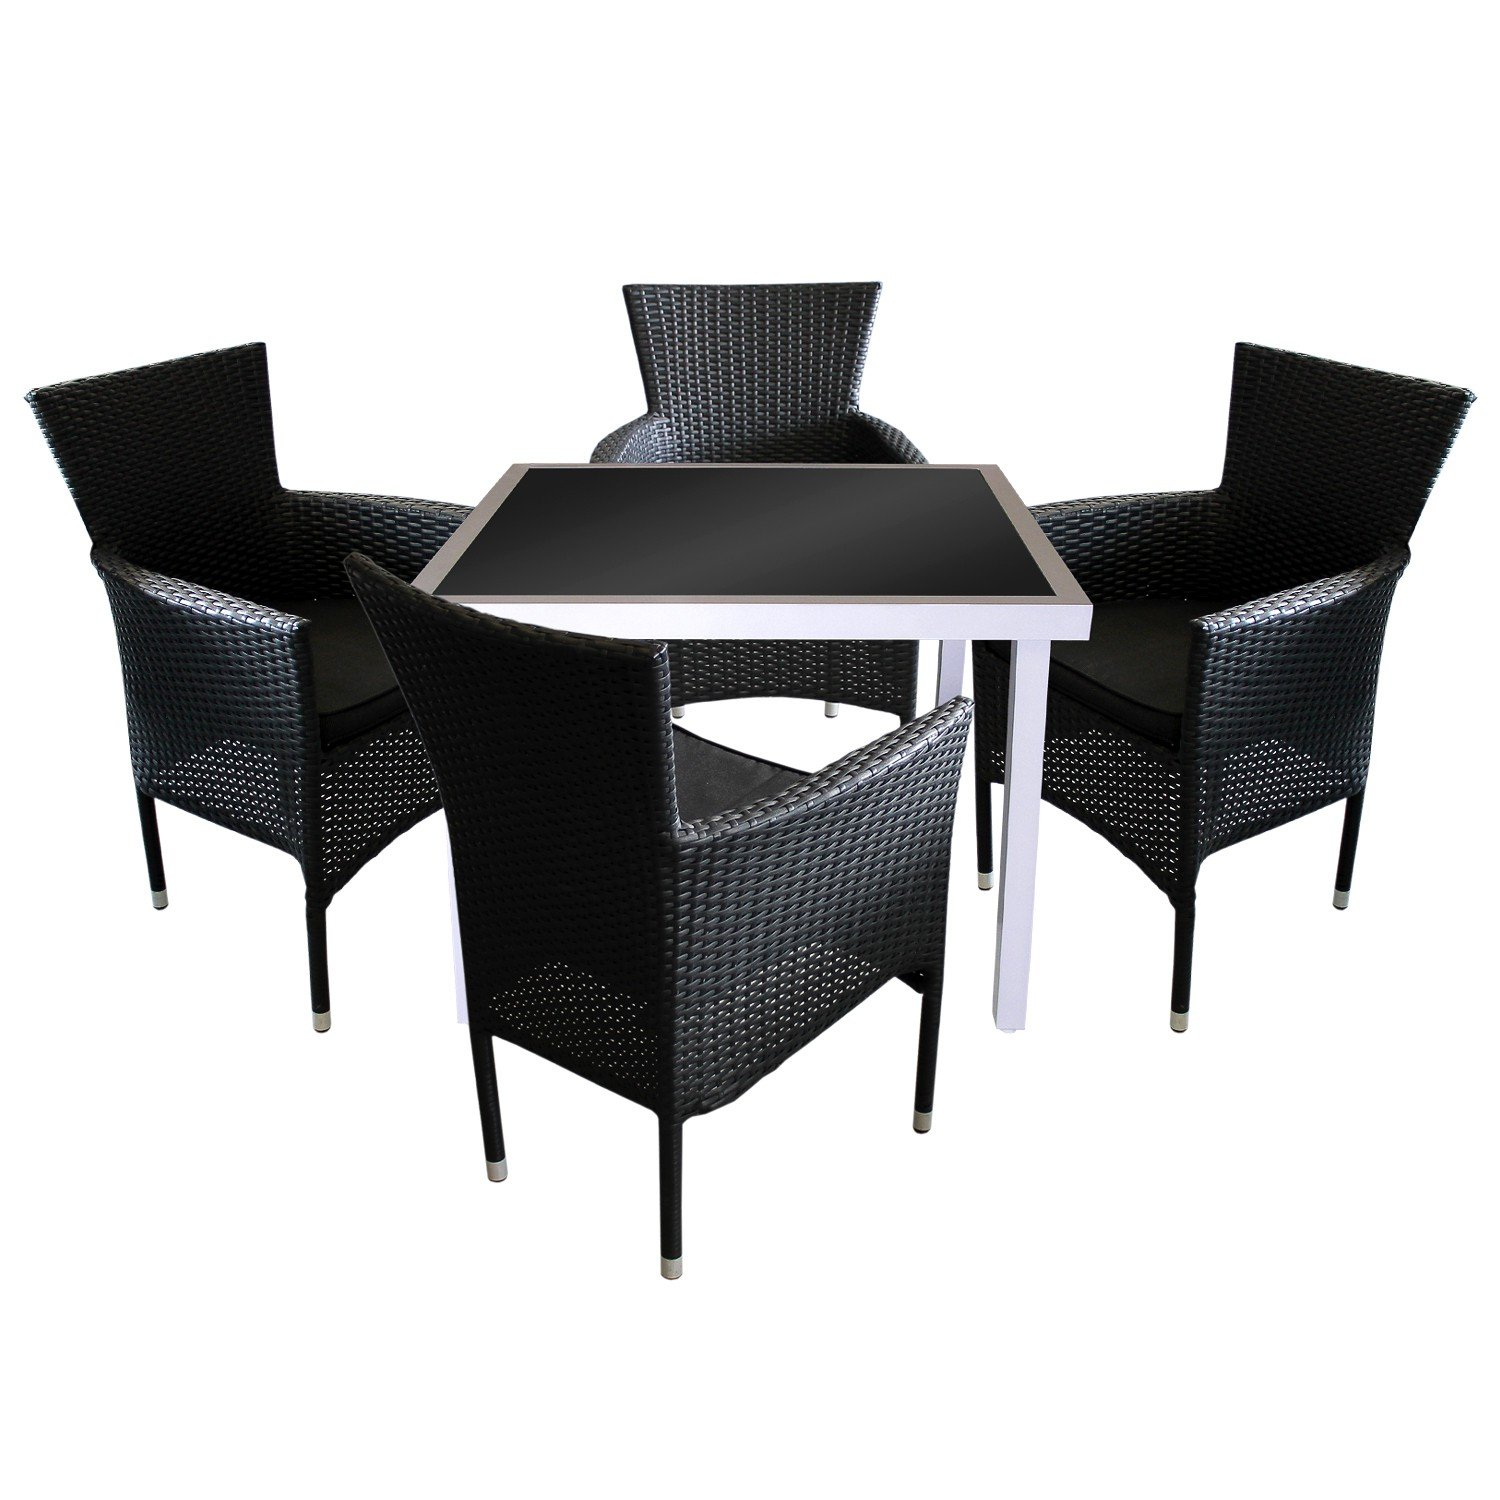 5tlg terrassenm bel gartenm bel balkonm bel bistro set aluminium gartentisch 90x90cm mit. Black Bedroom Furniture Sets. Home Design Ideas